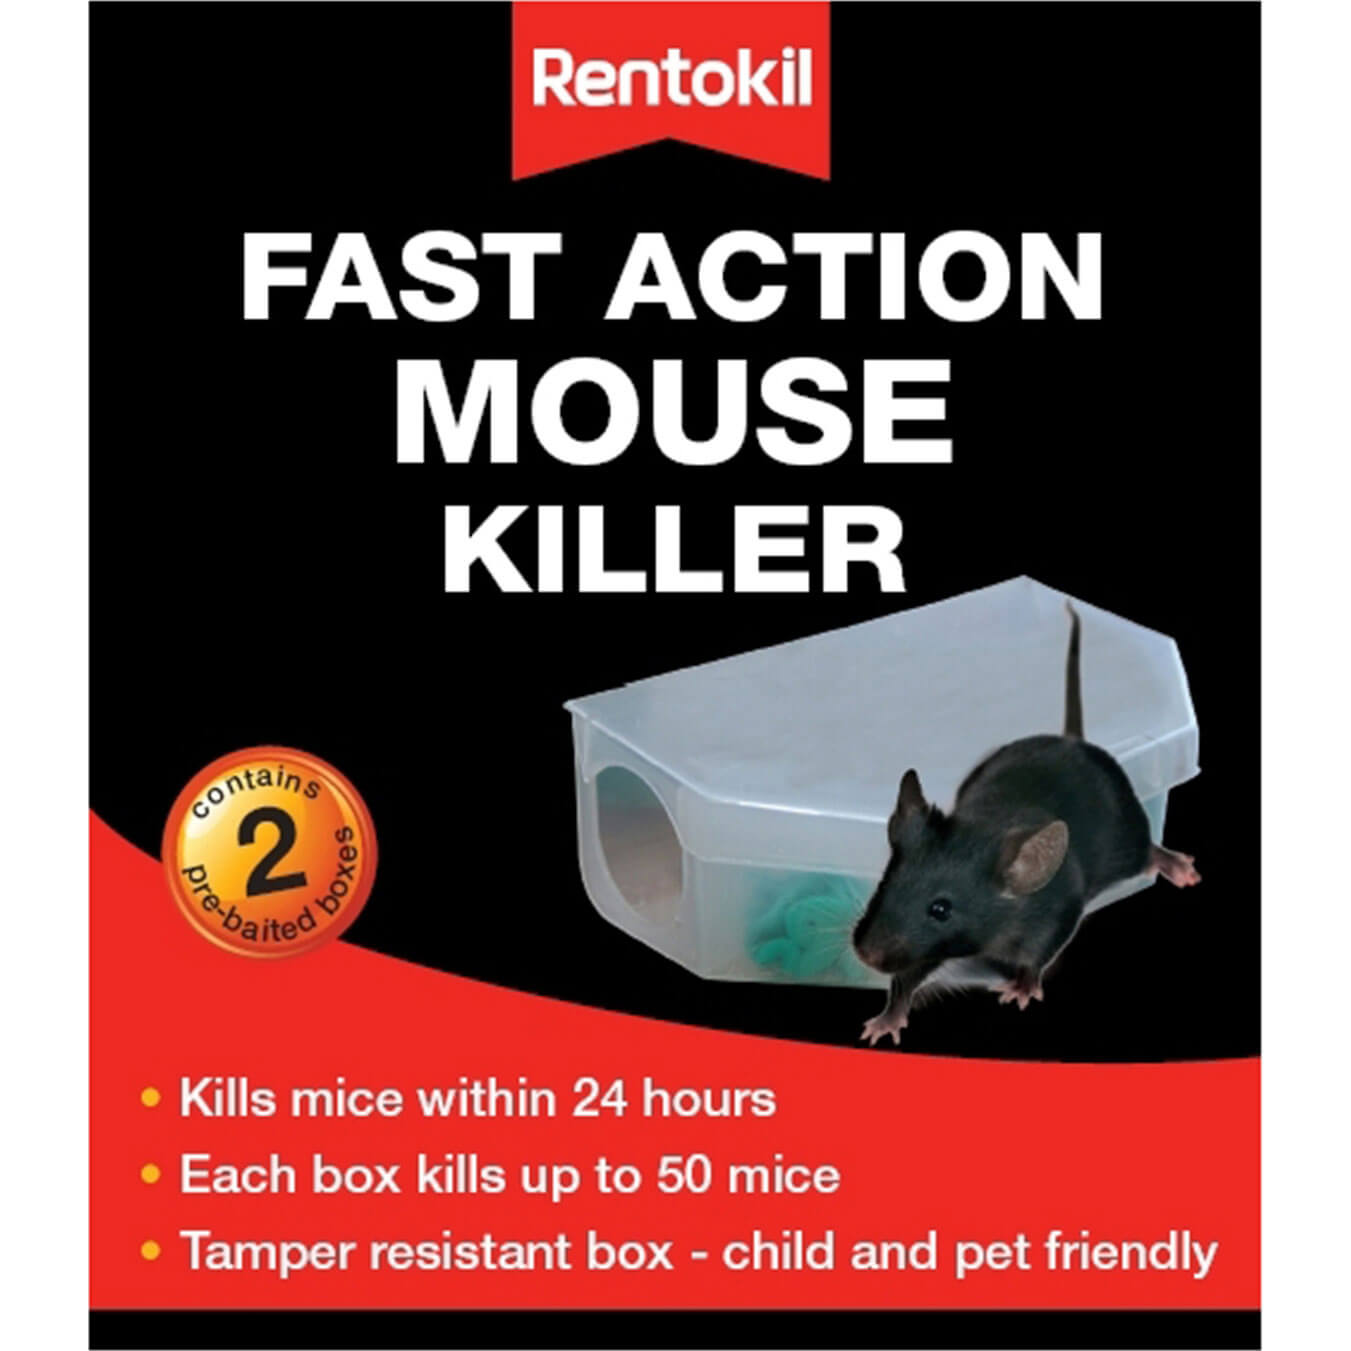 Image of Rentokil Fast Action Mouse Killer Pack of 2